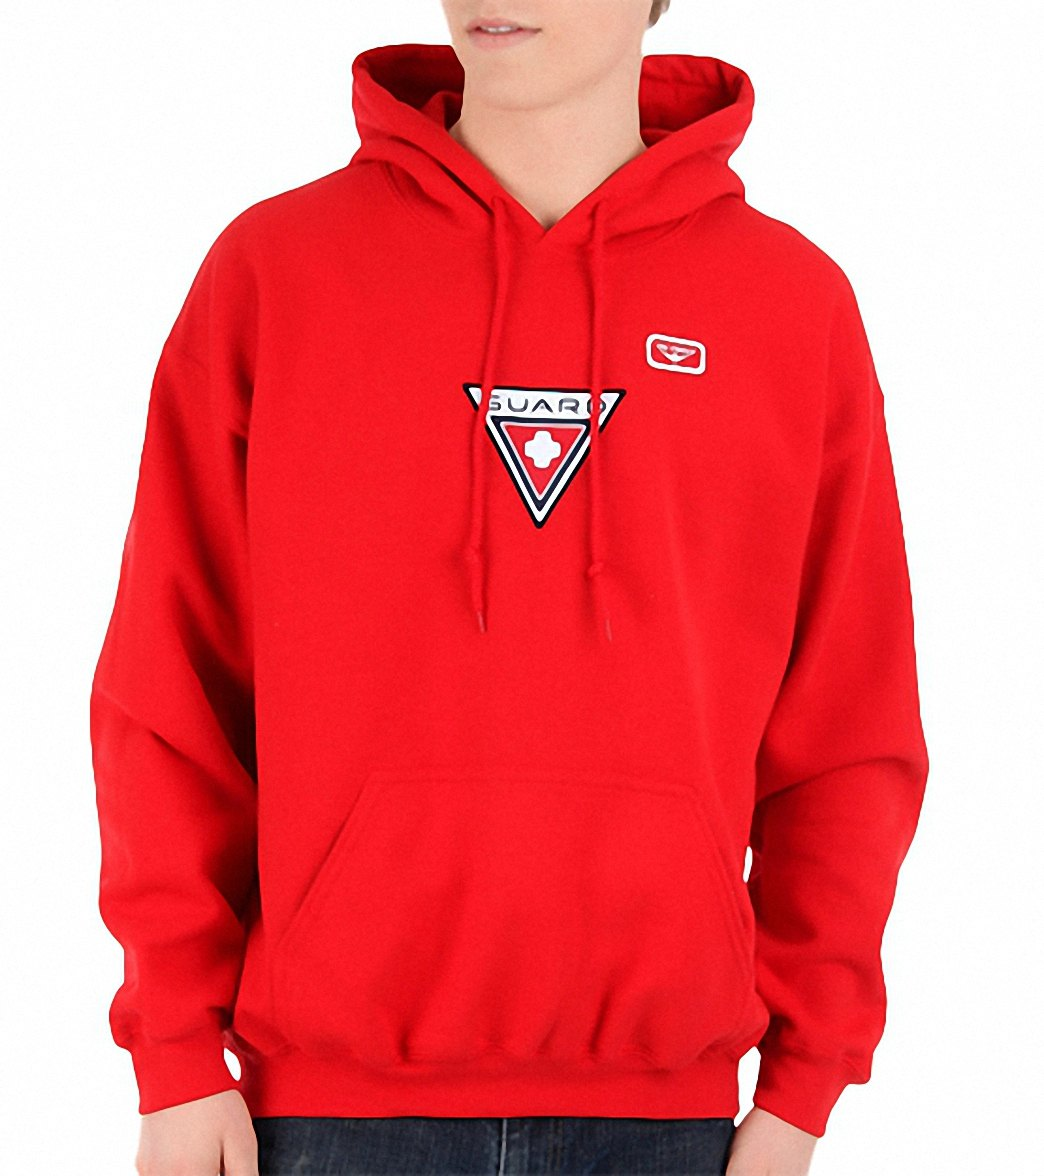 8dfb1443c99 The Finals Unisex Lifeguard Hooded Sweatshirt at SwimOutlet.com